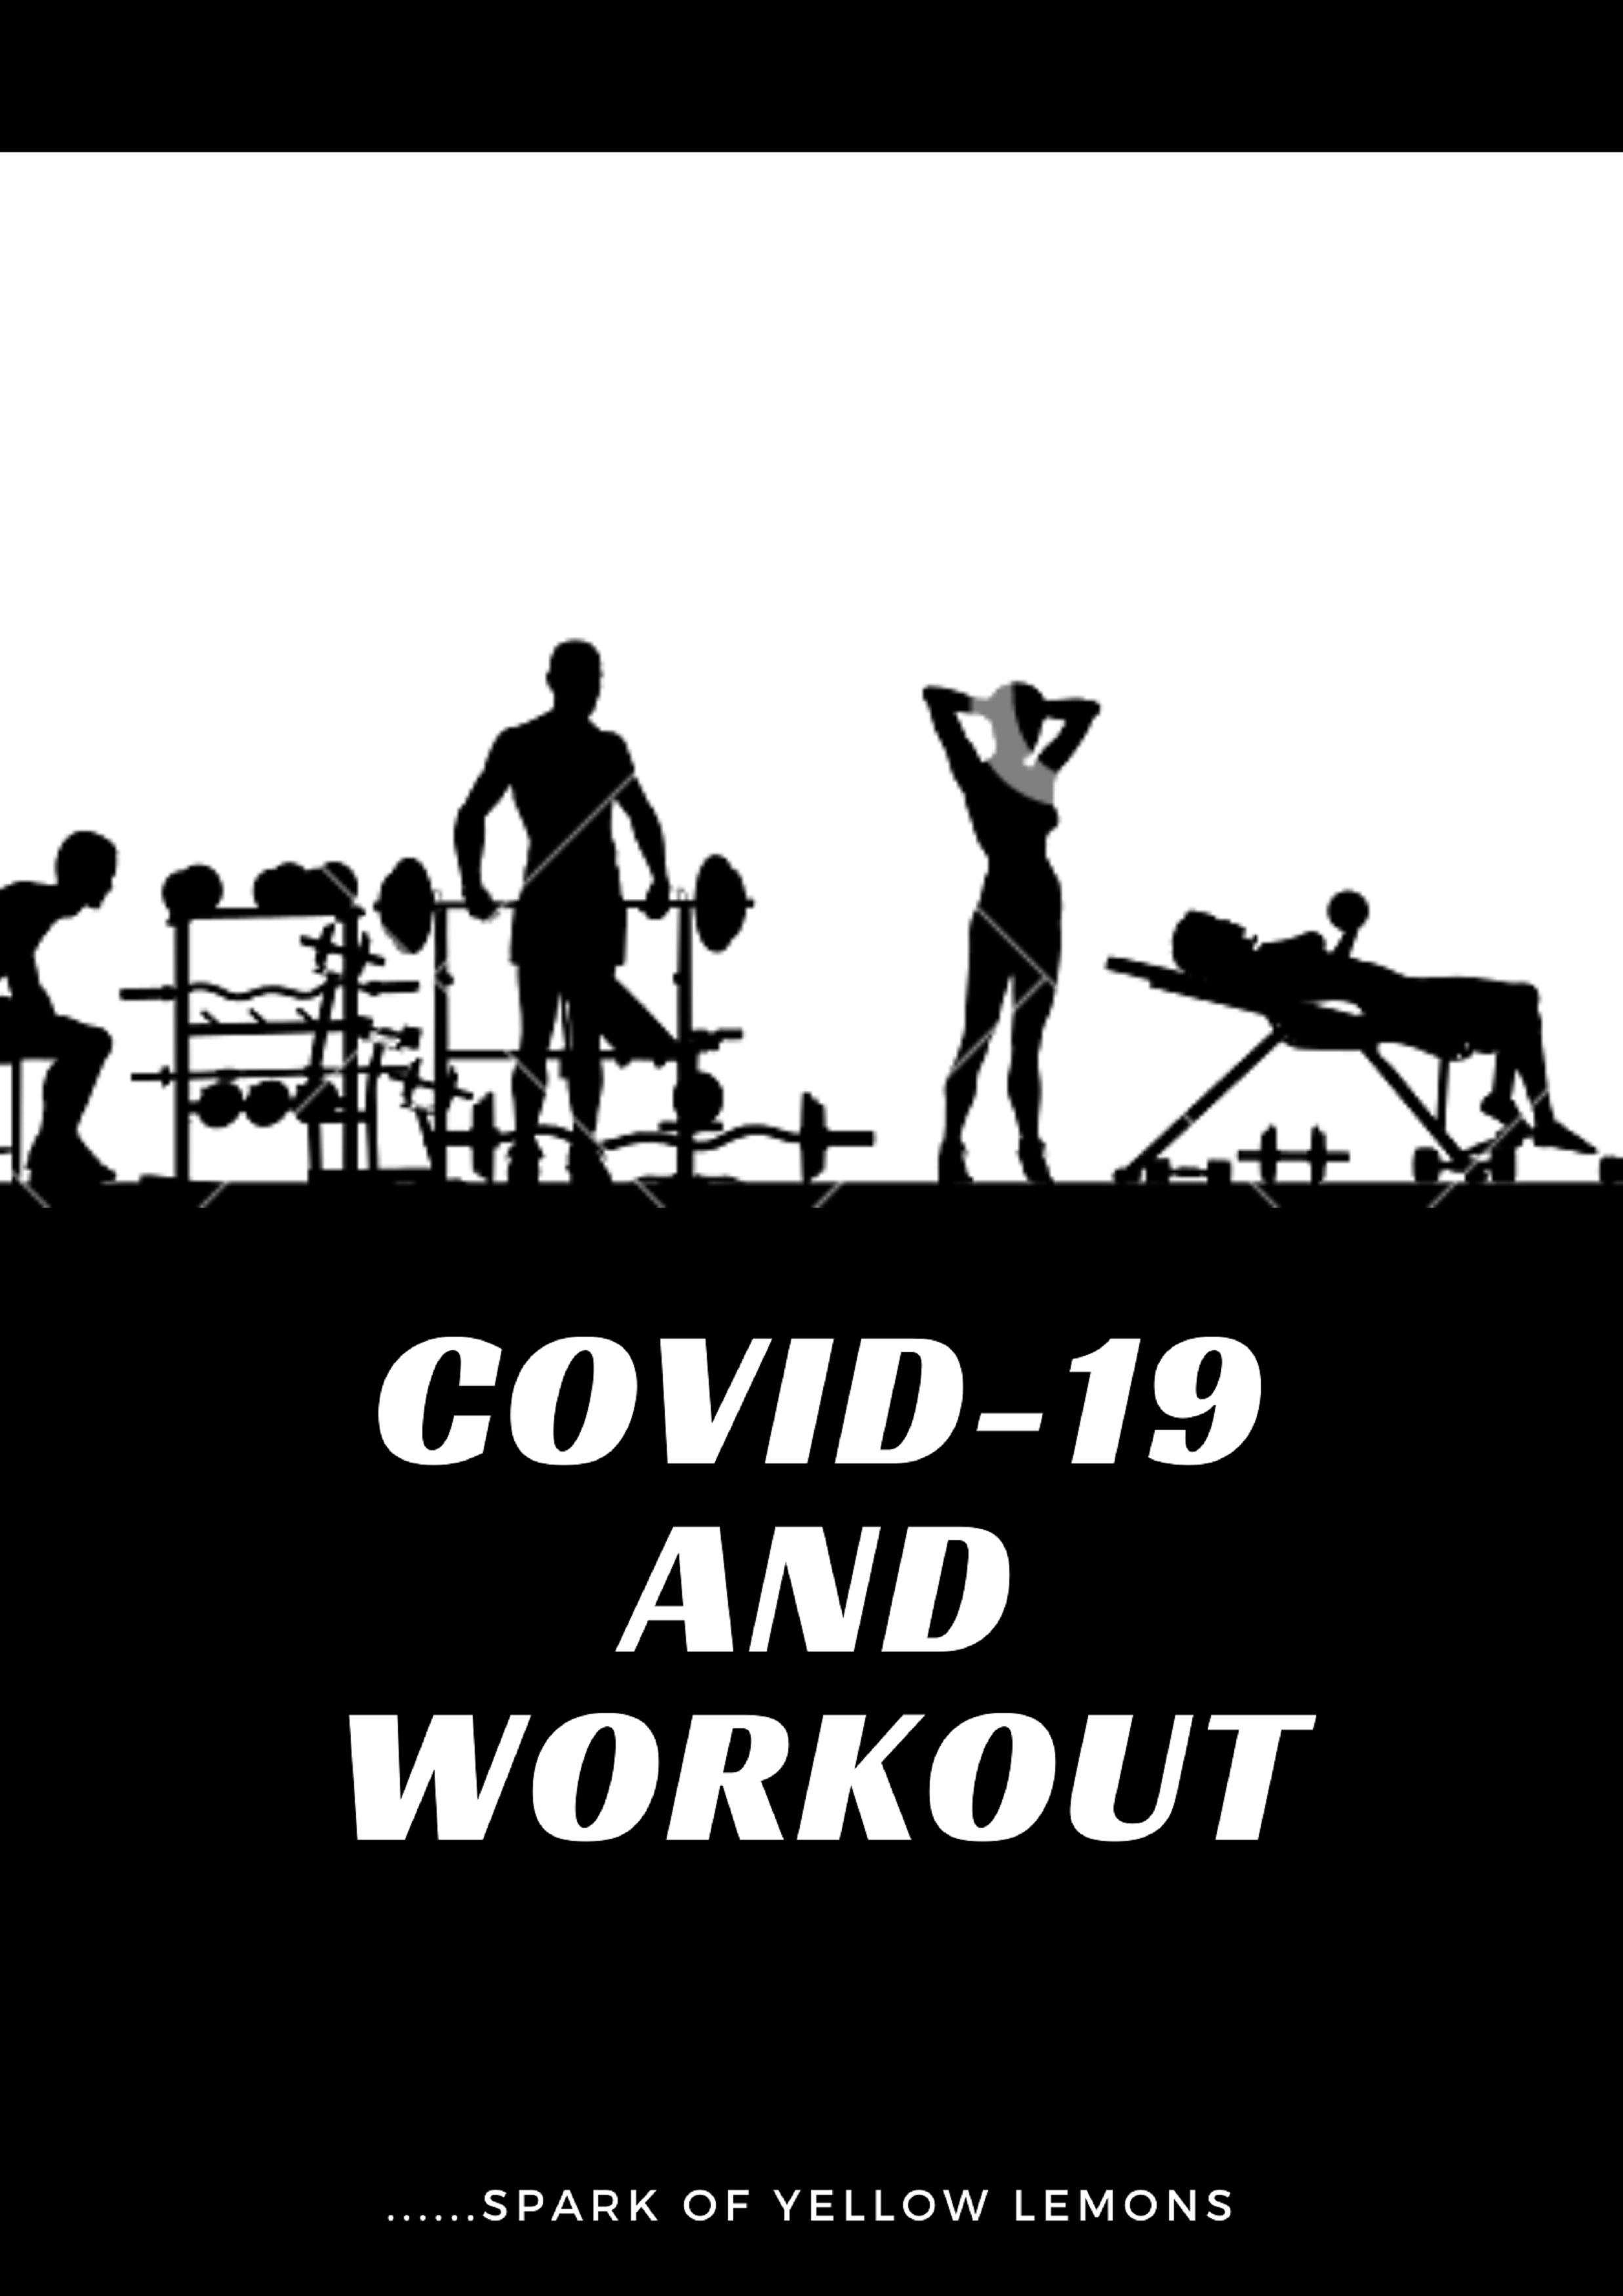 Covid-19 And Workout